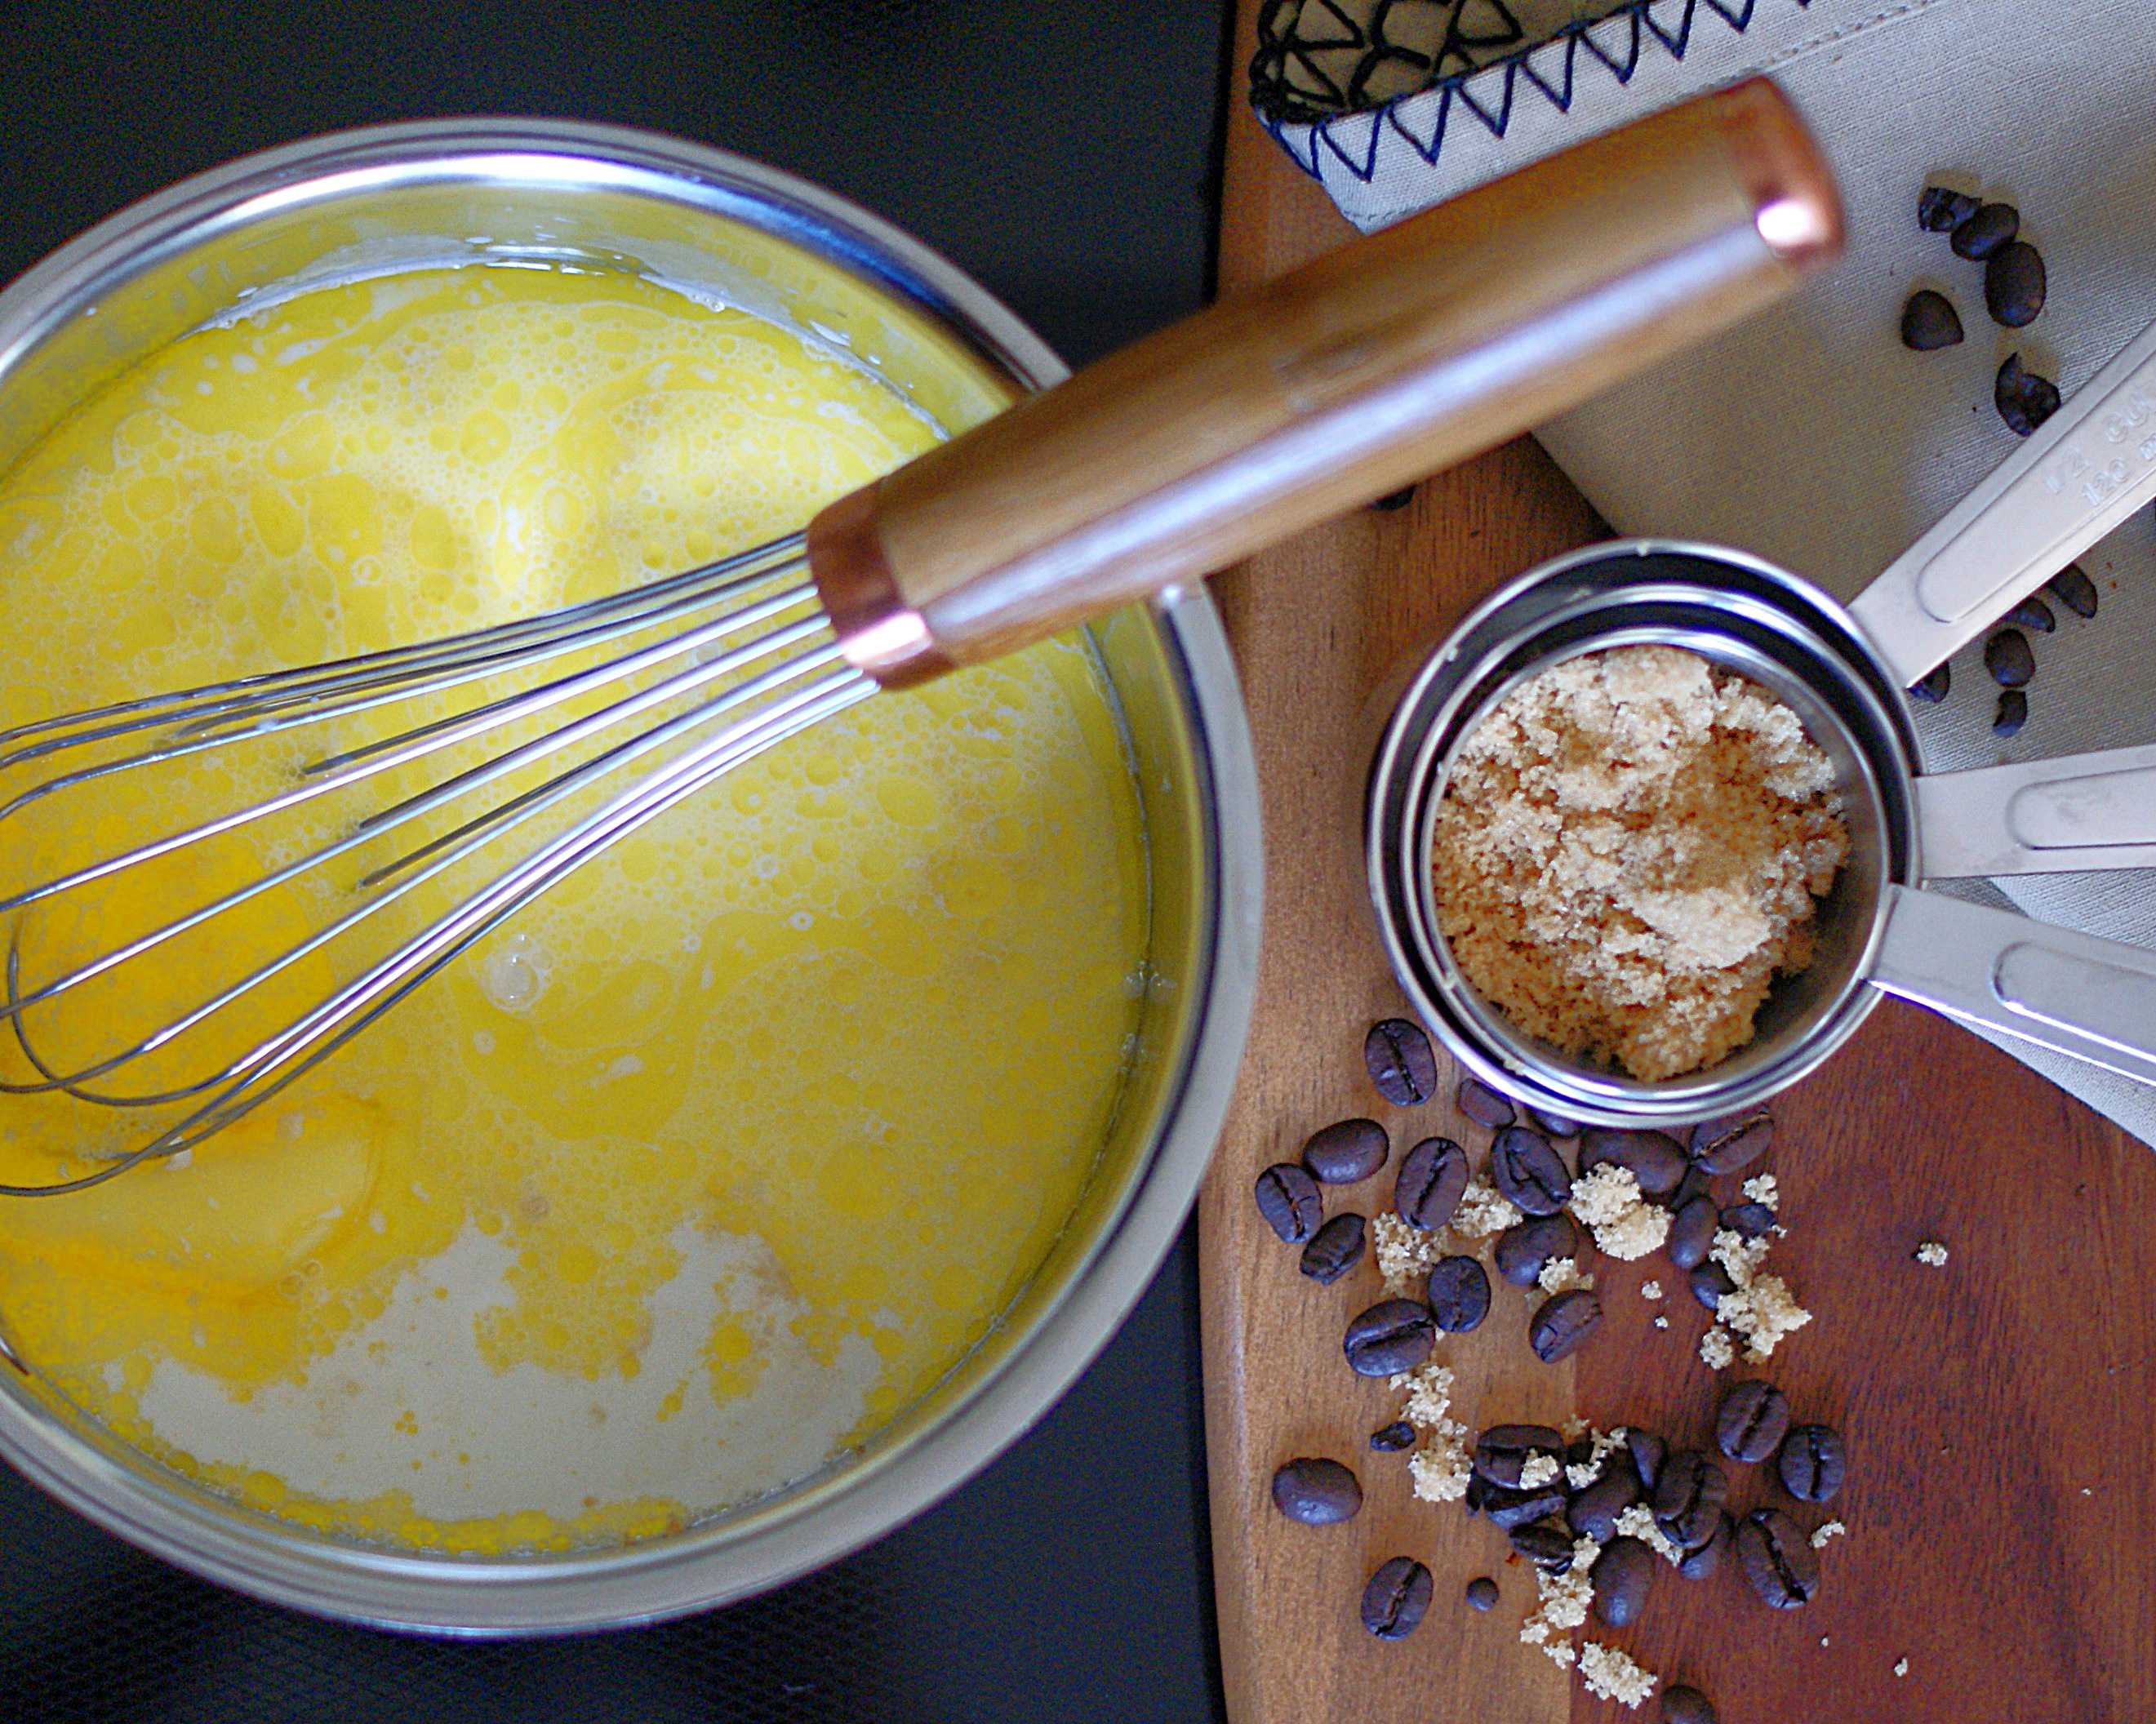 Butter and cream in a sauce pan with a whisk.